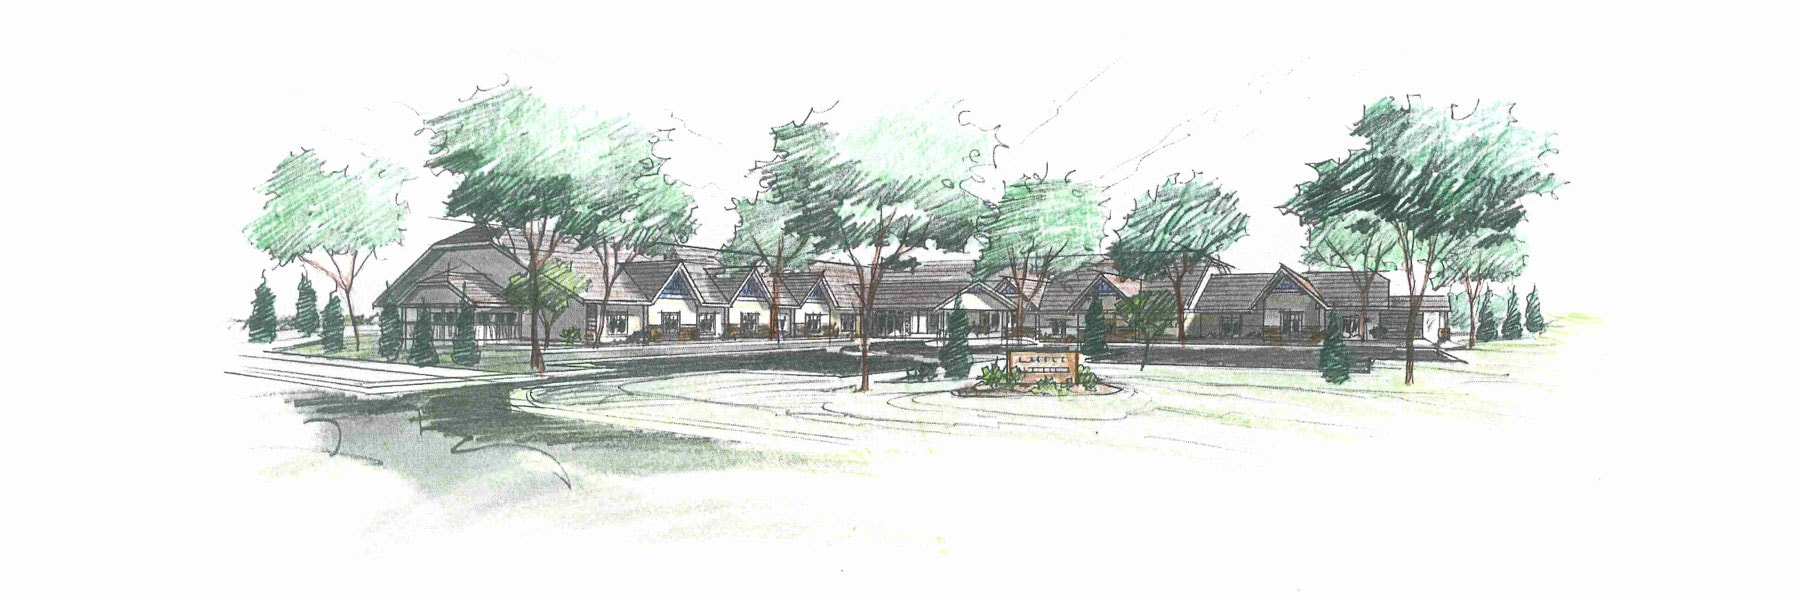 Eagle Ridge Senior Living Rendering